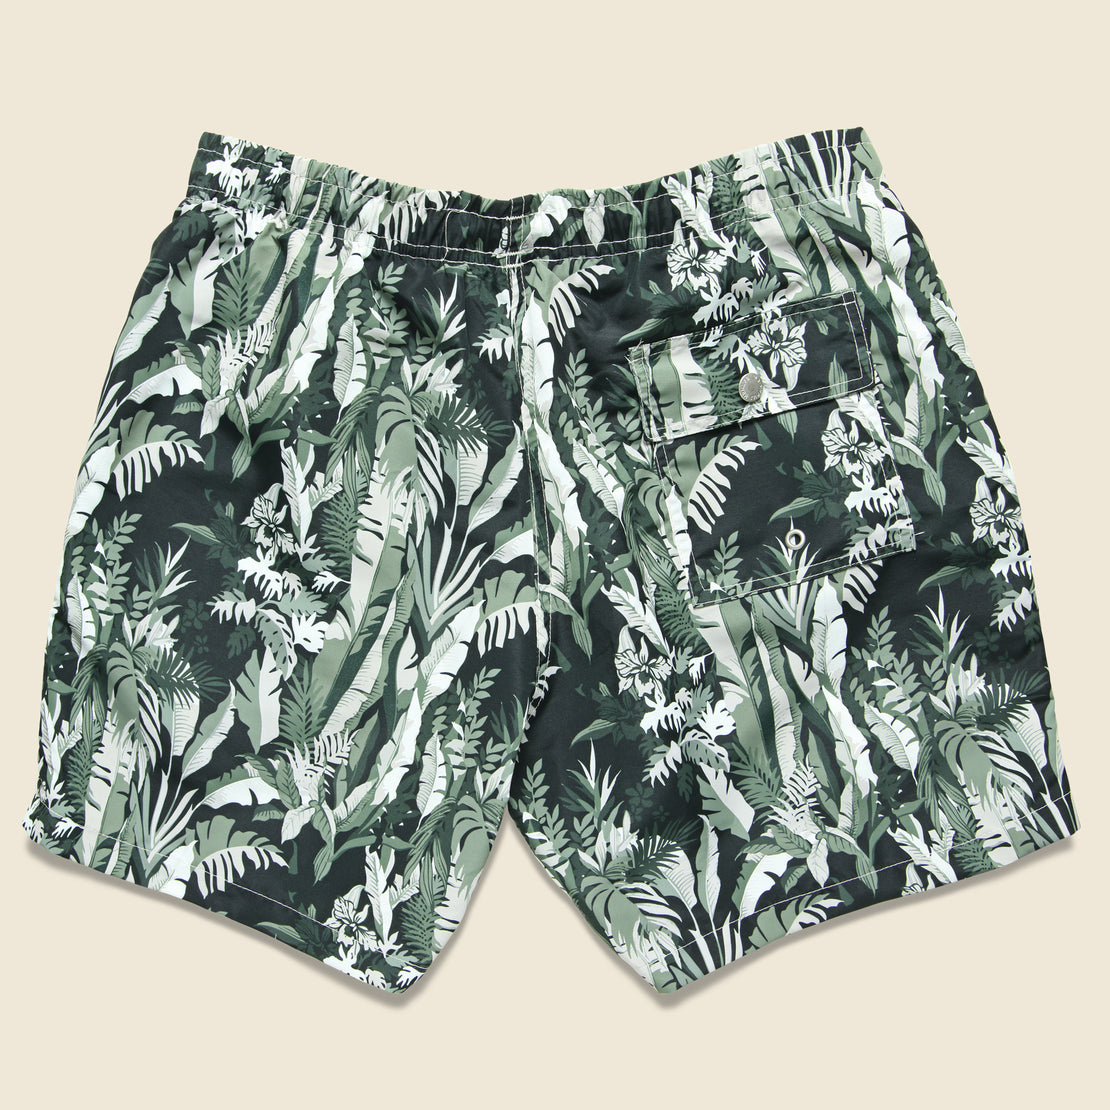 Tropical Forest Swim Trunk - Green